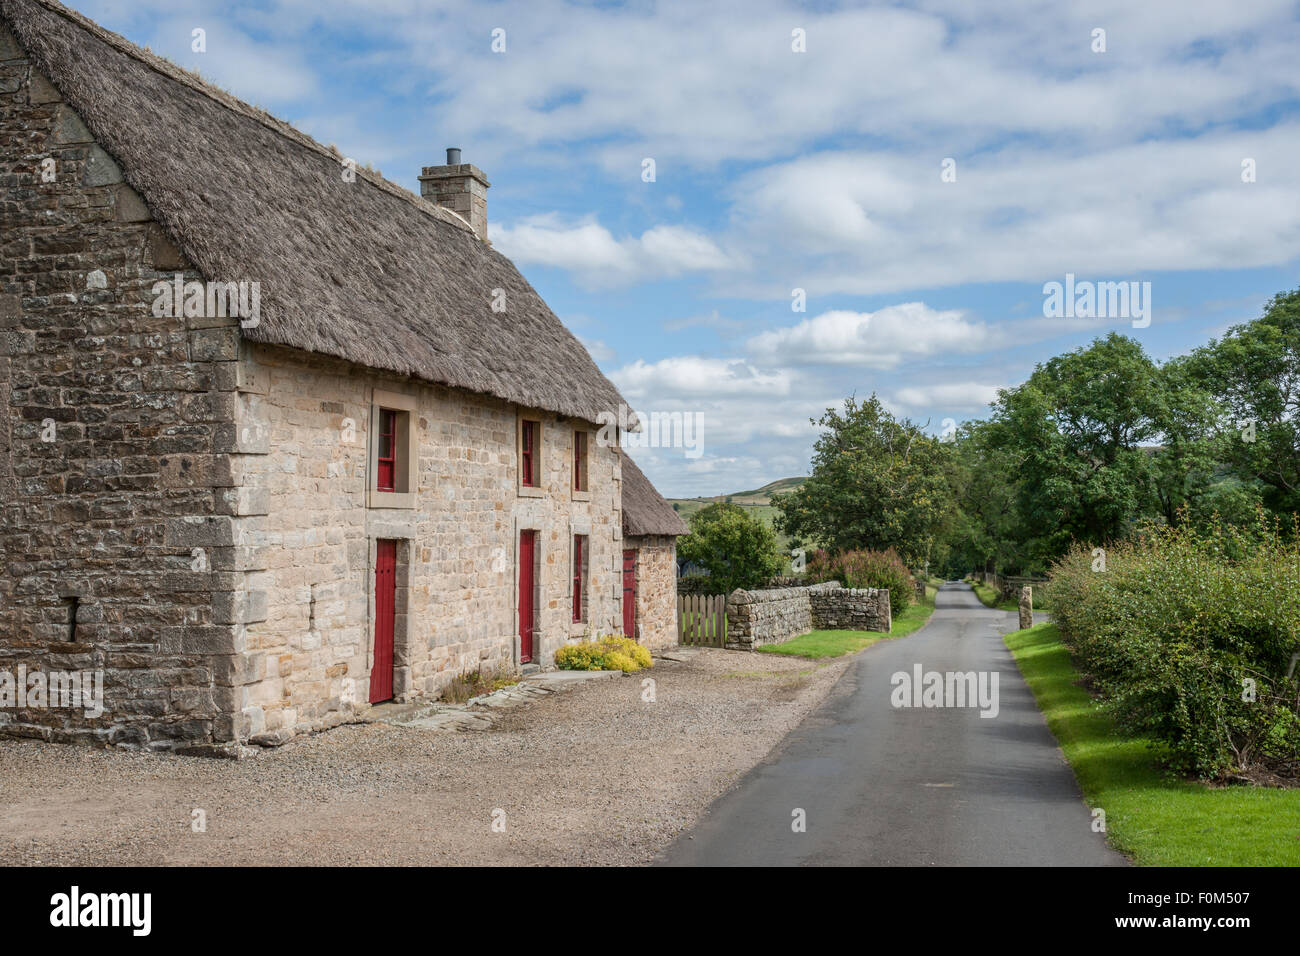 a quaint English stone cottage with a thatch roof - Stock Image